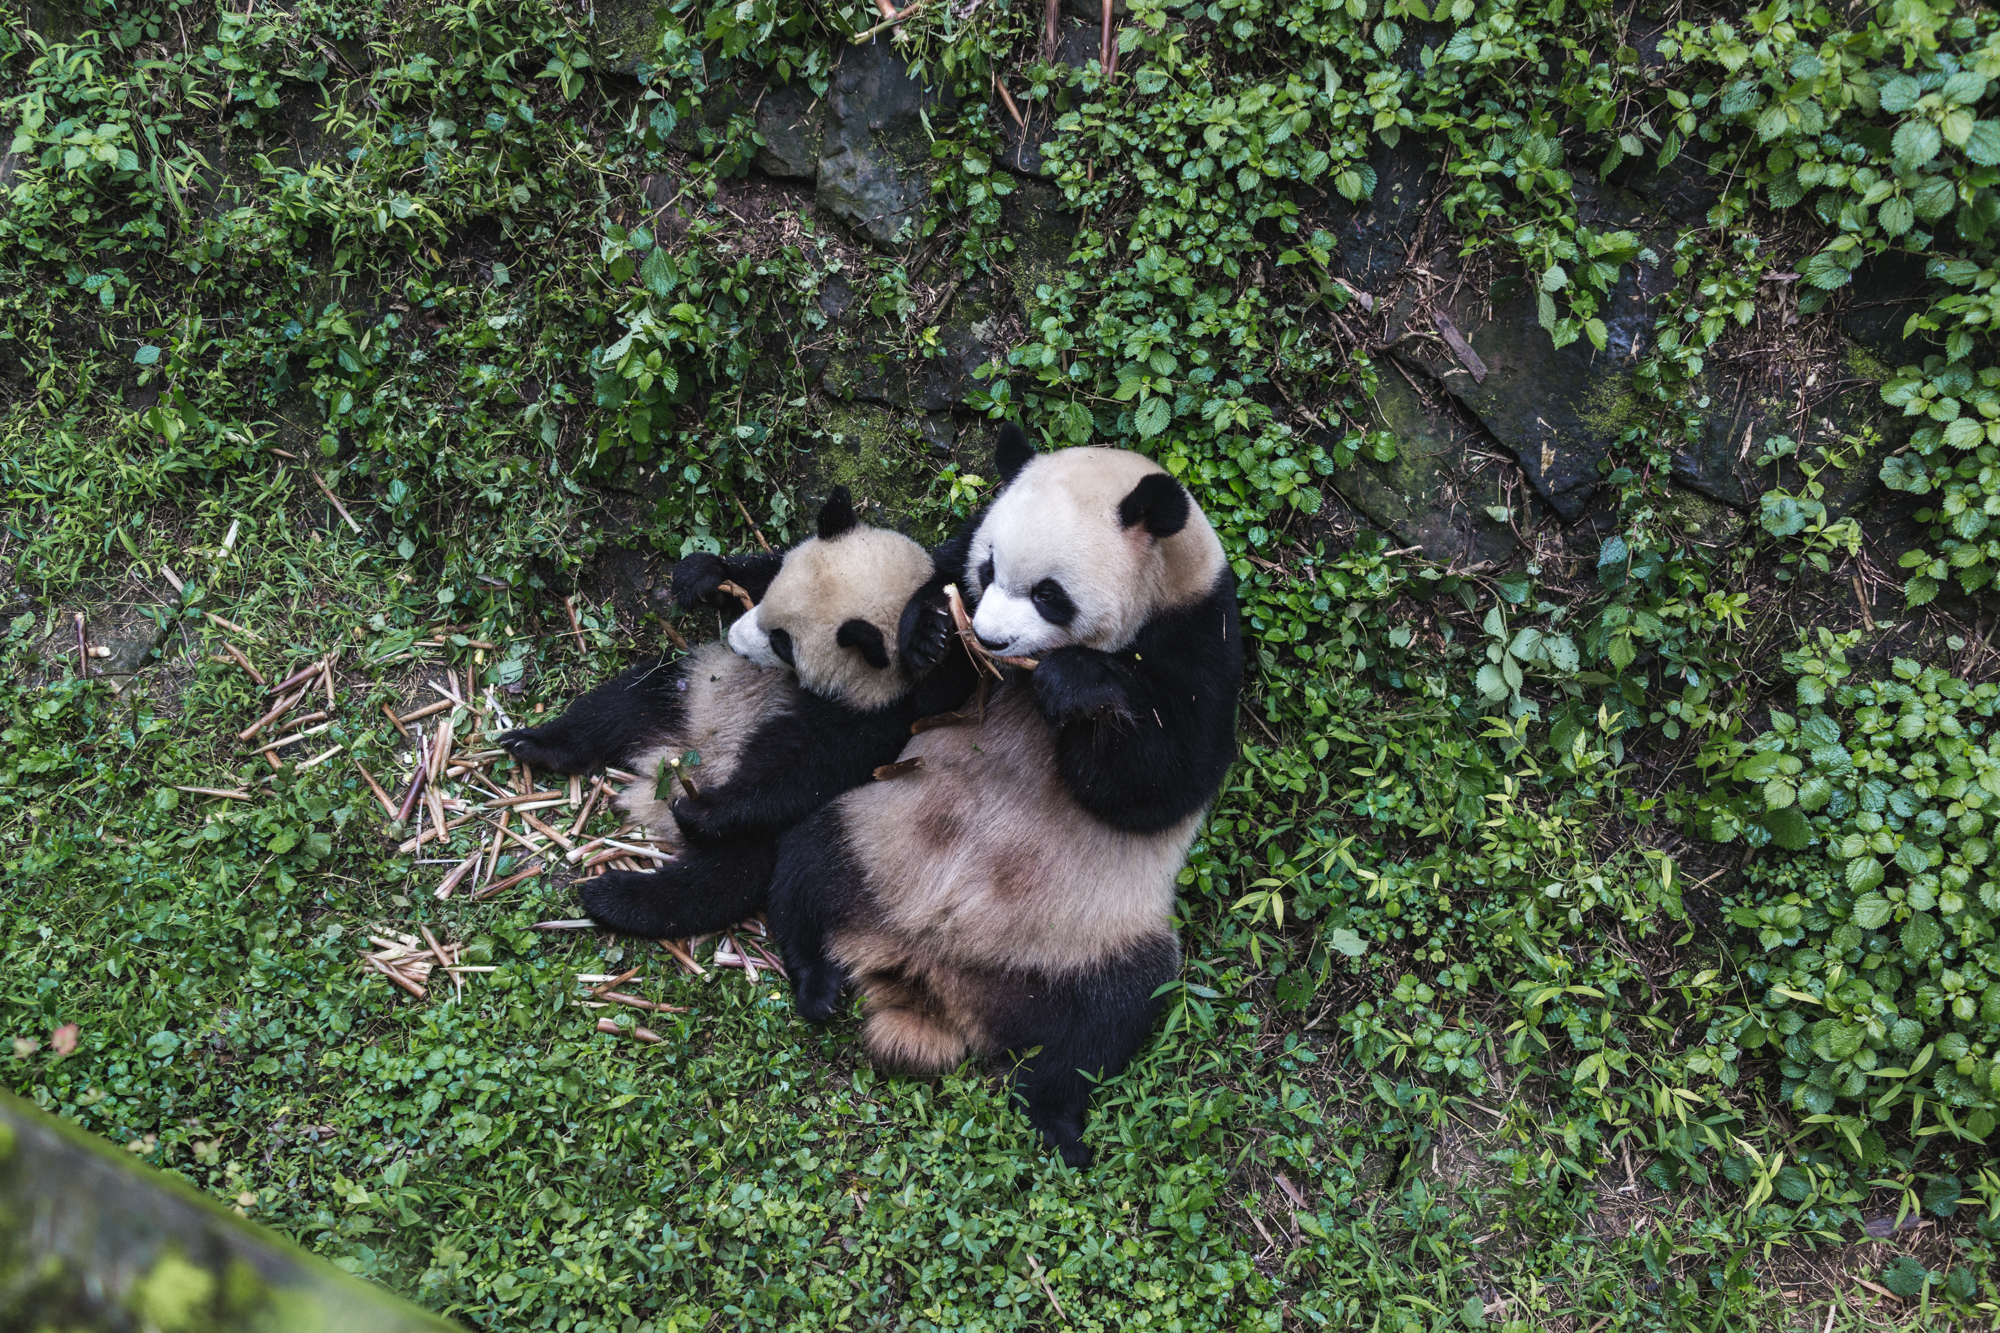 Panda Research Center in Chengdu China